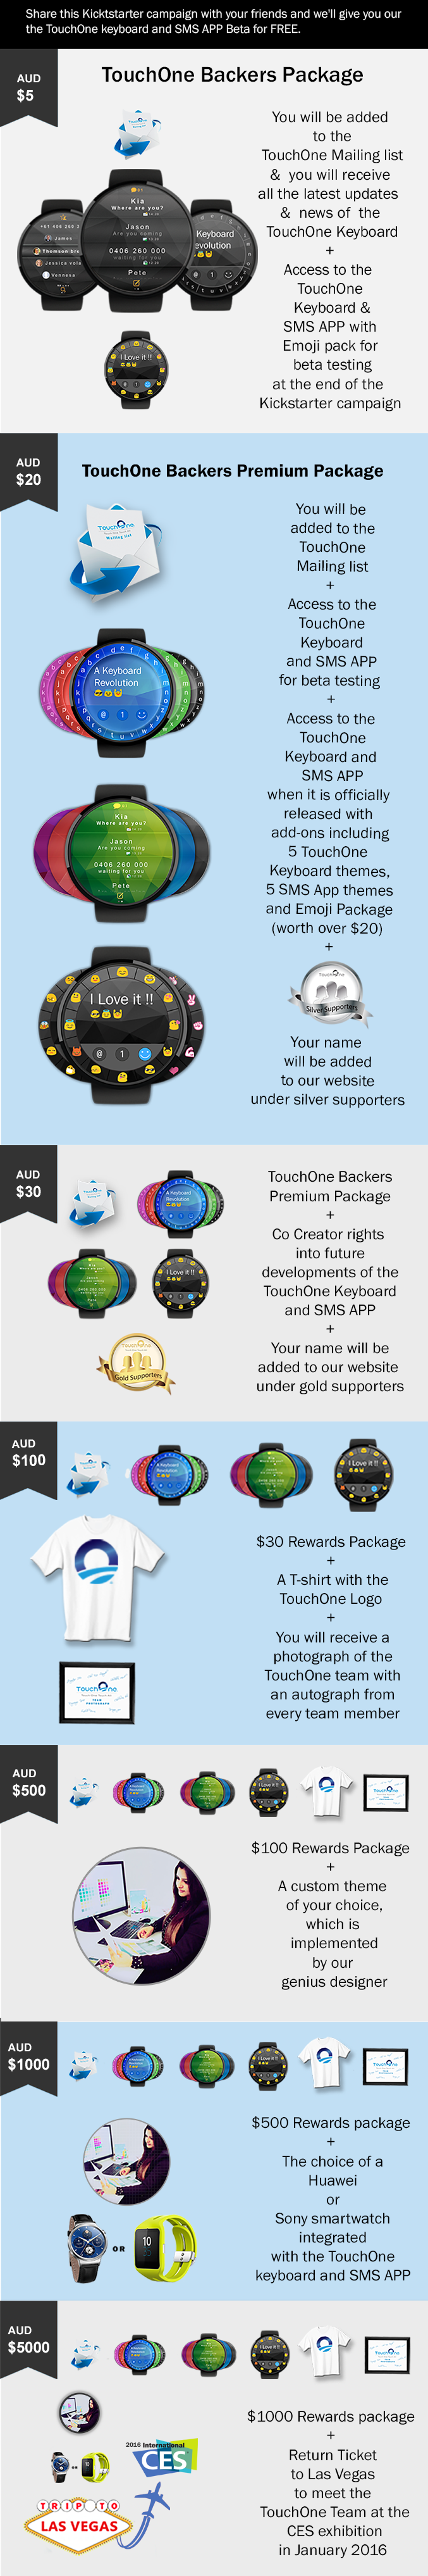 TouchOne Keyboard- The First Dedicated Smartwatch Keyboard by